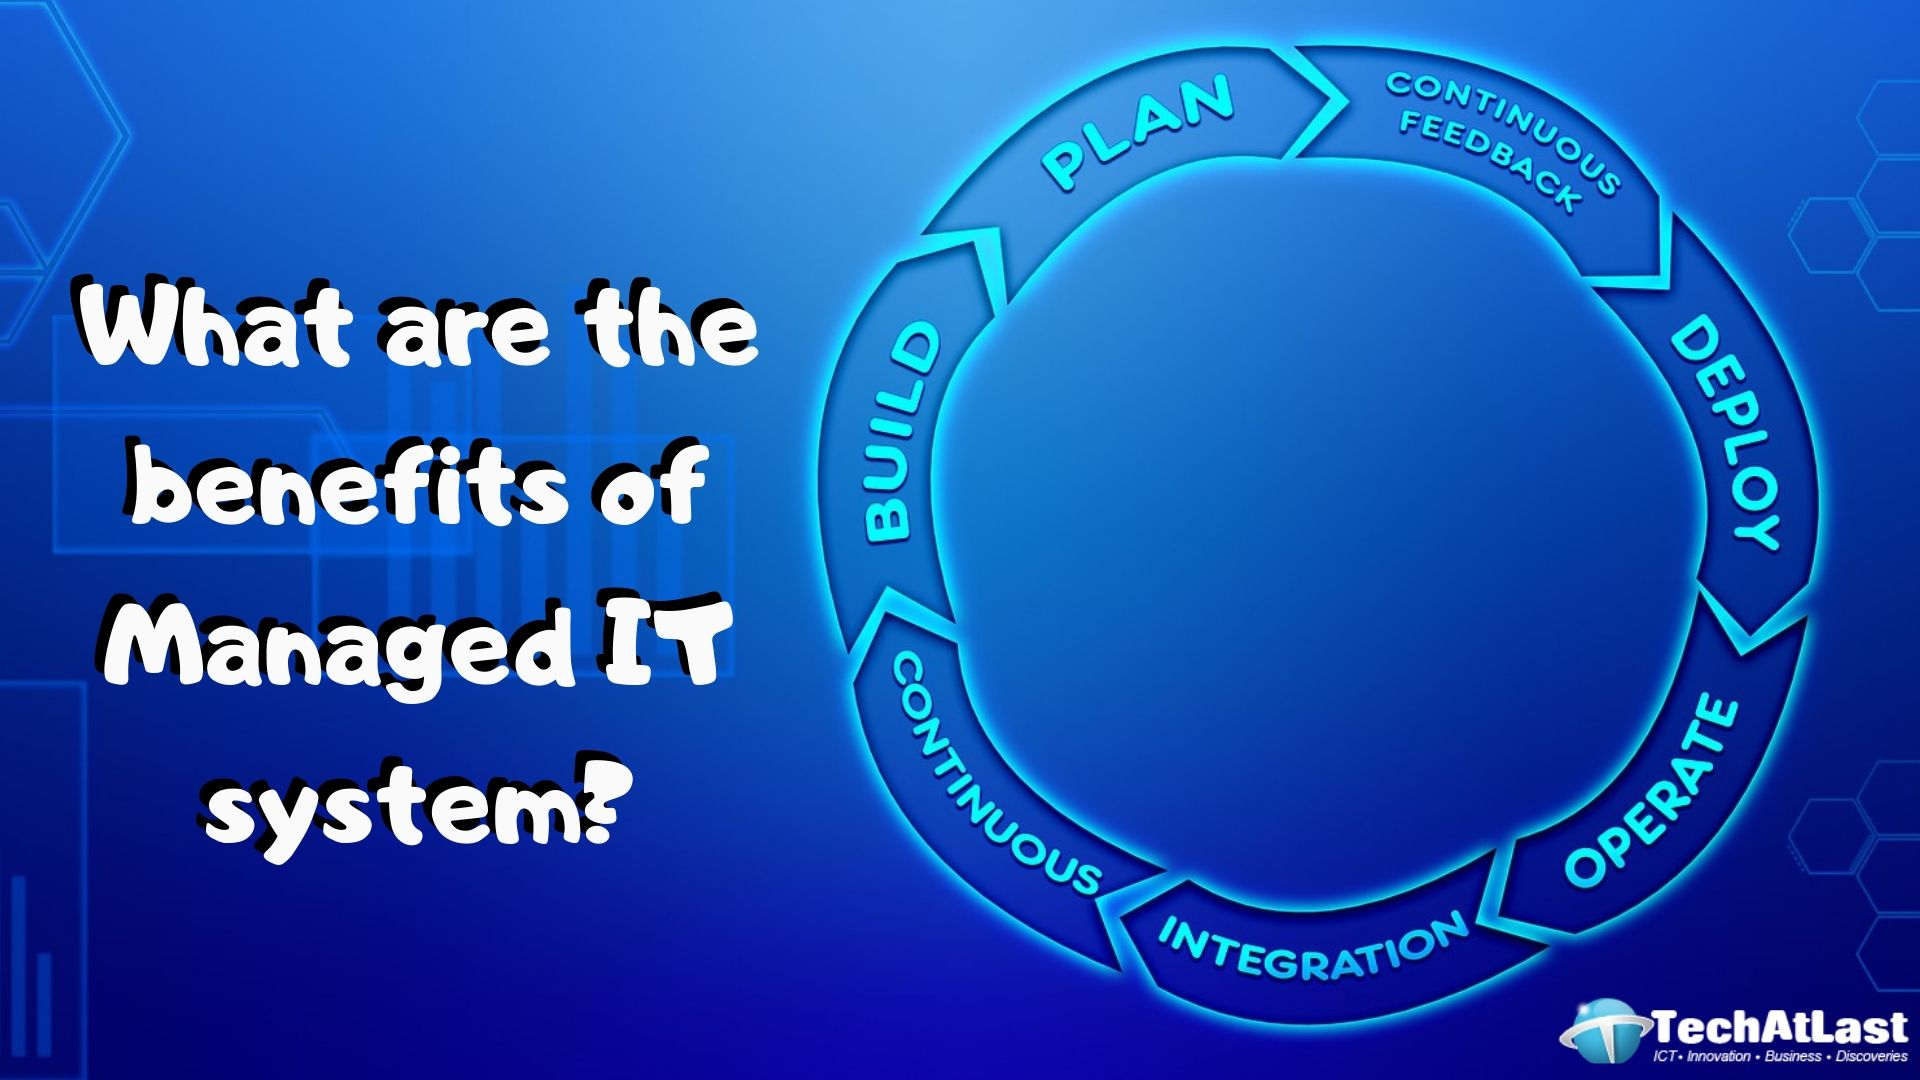 What are the benefits of Managed IT system over Tech Support system? - TECHATLAST